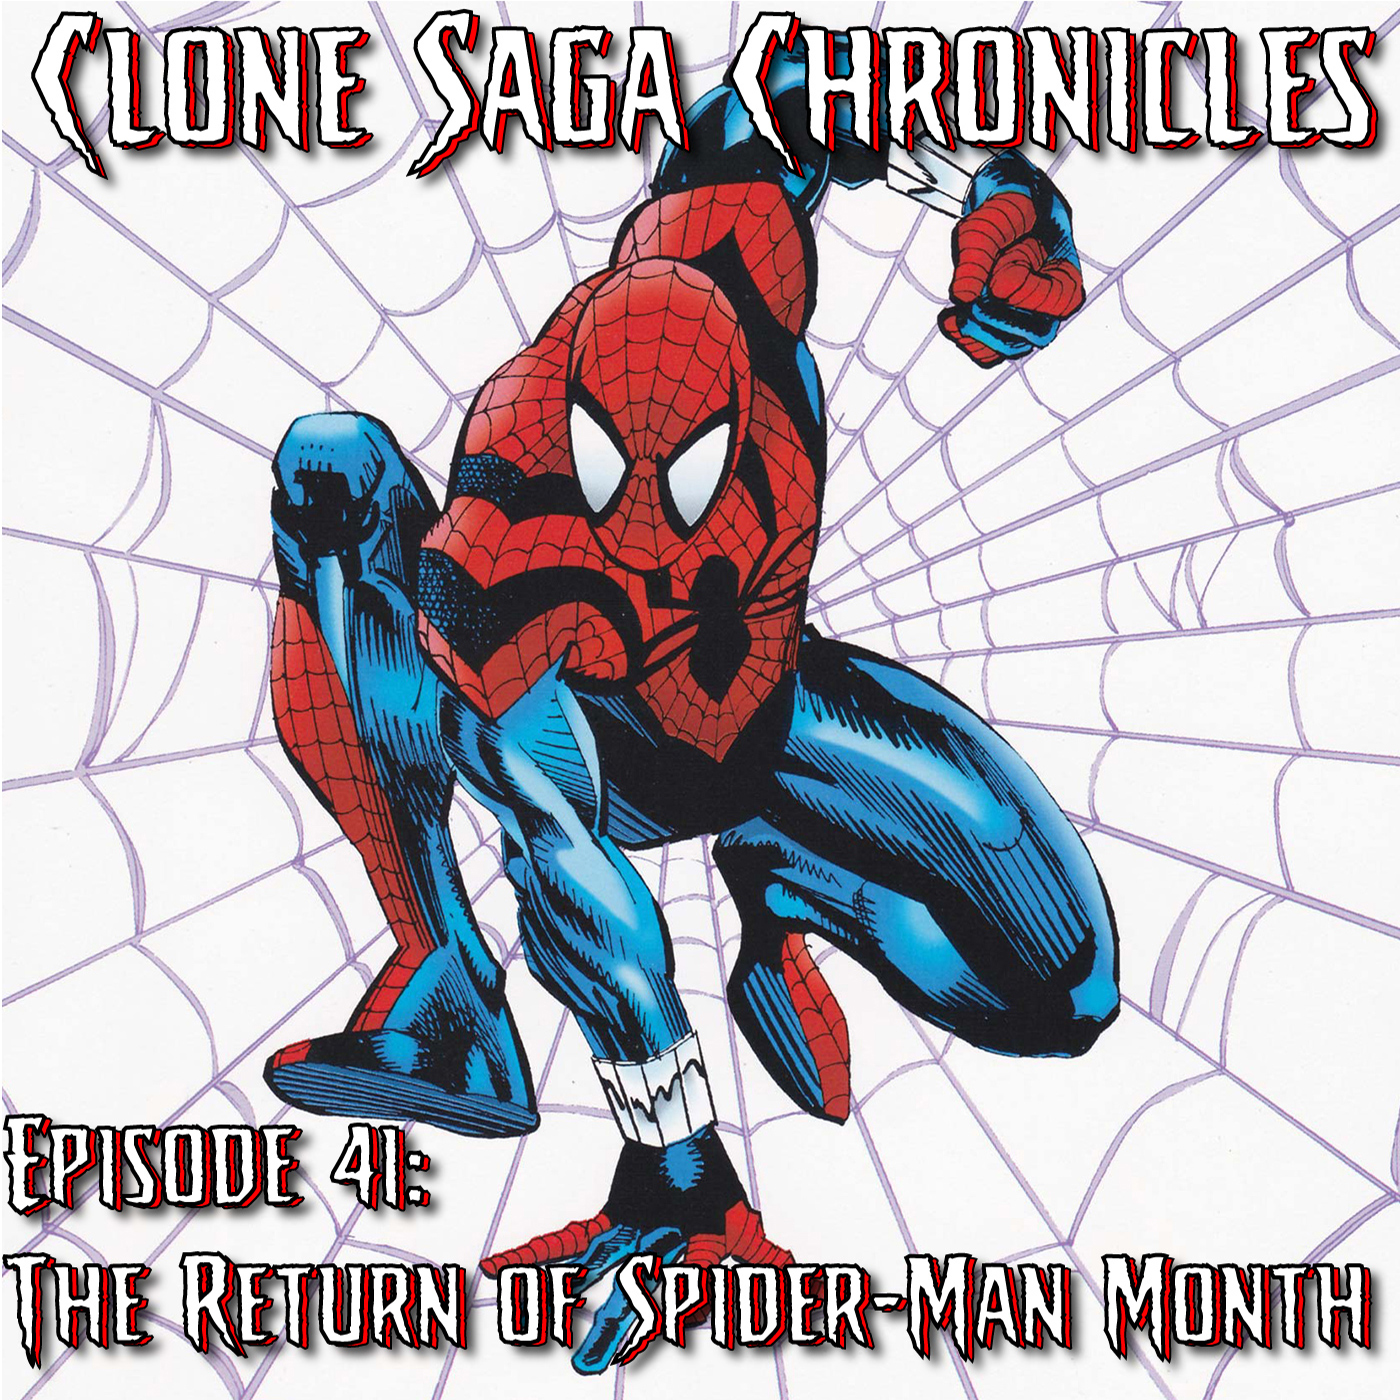 CSC Episode 41: The Return of Spider-Man (Jan/Feb 1995)